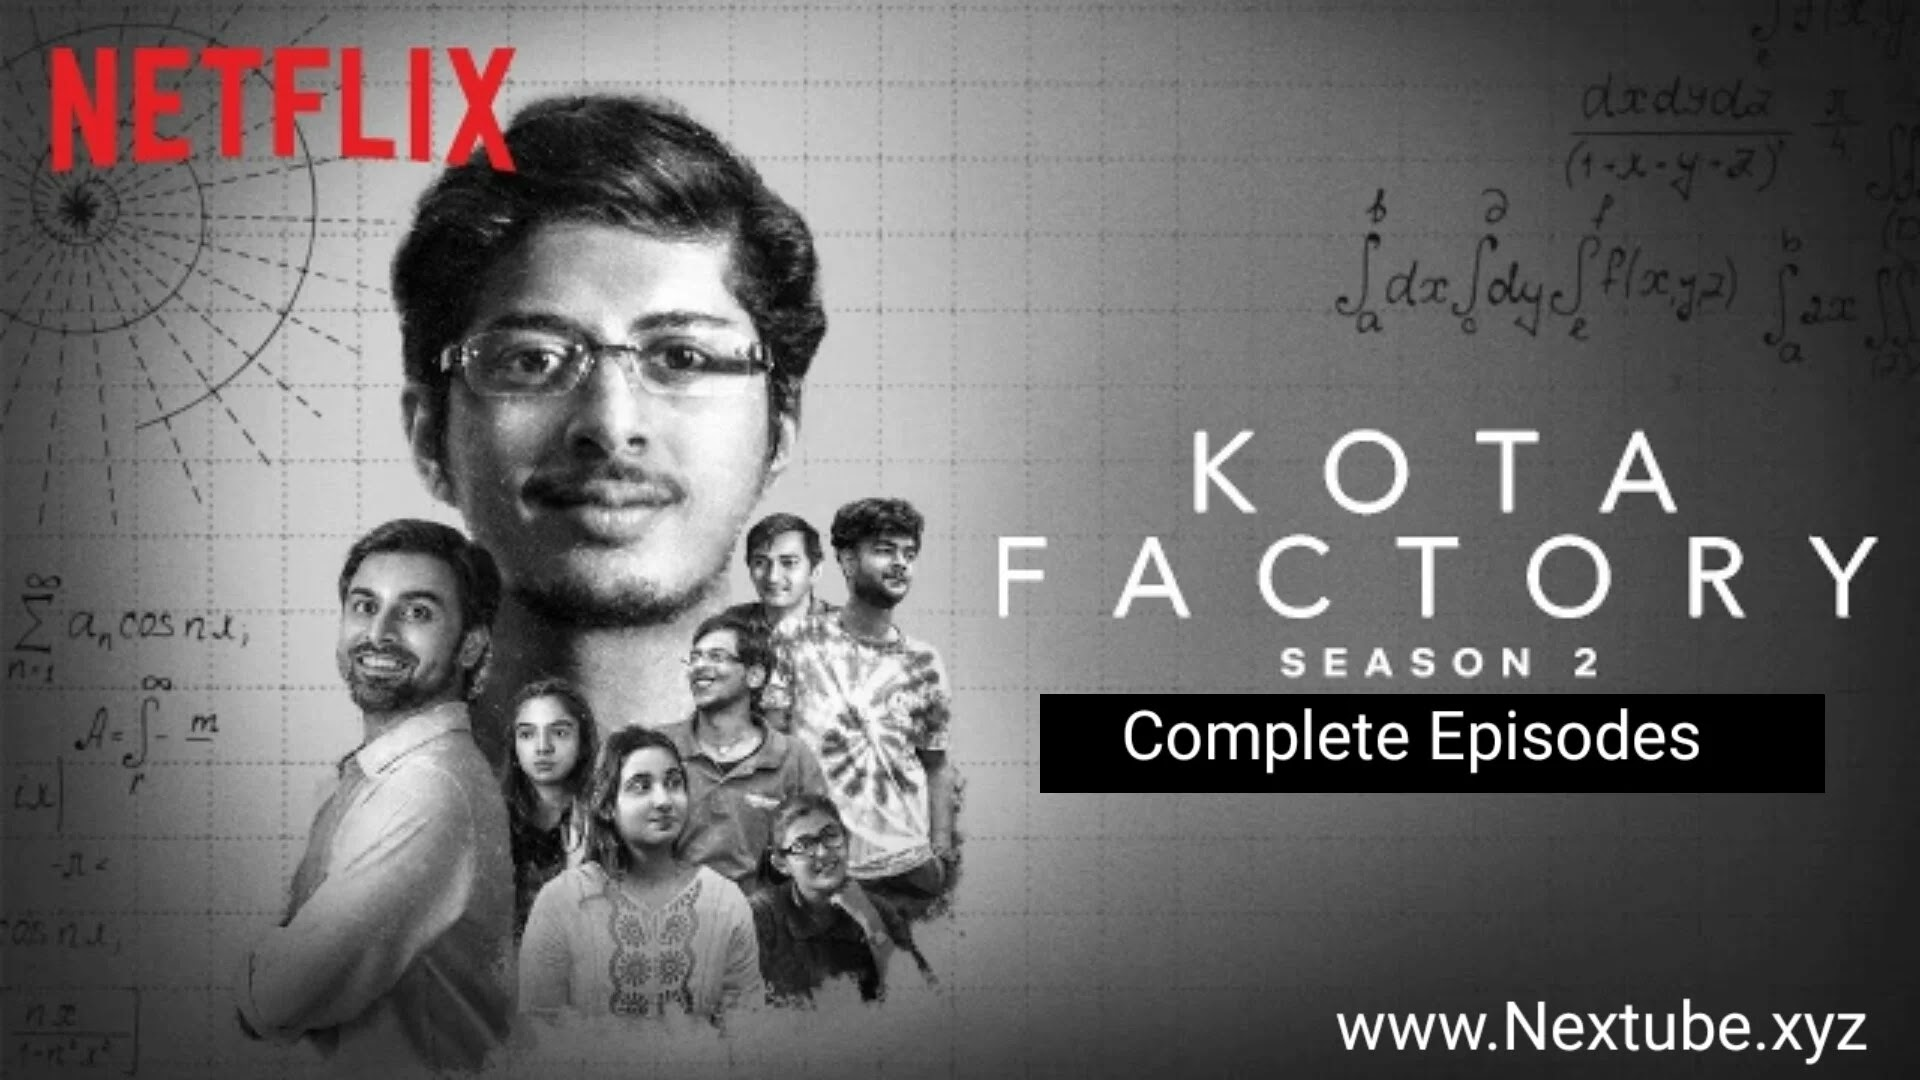 Kota Factory Season 2 Full Web Series Leaked Online For Free Download In HD Quality